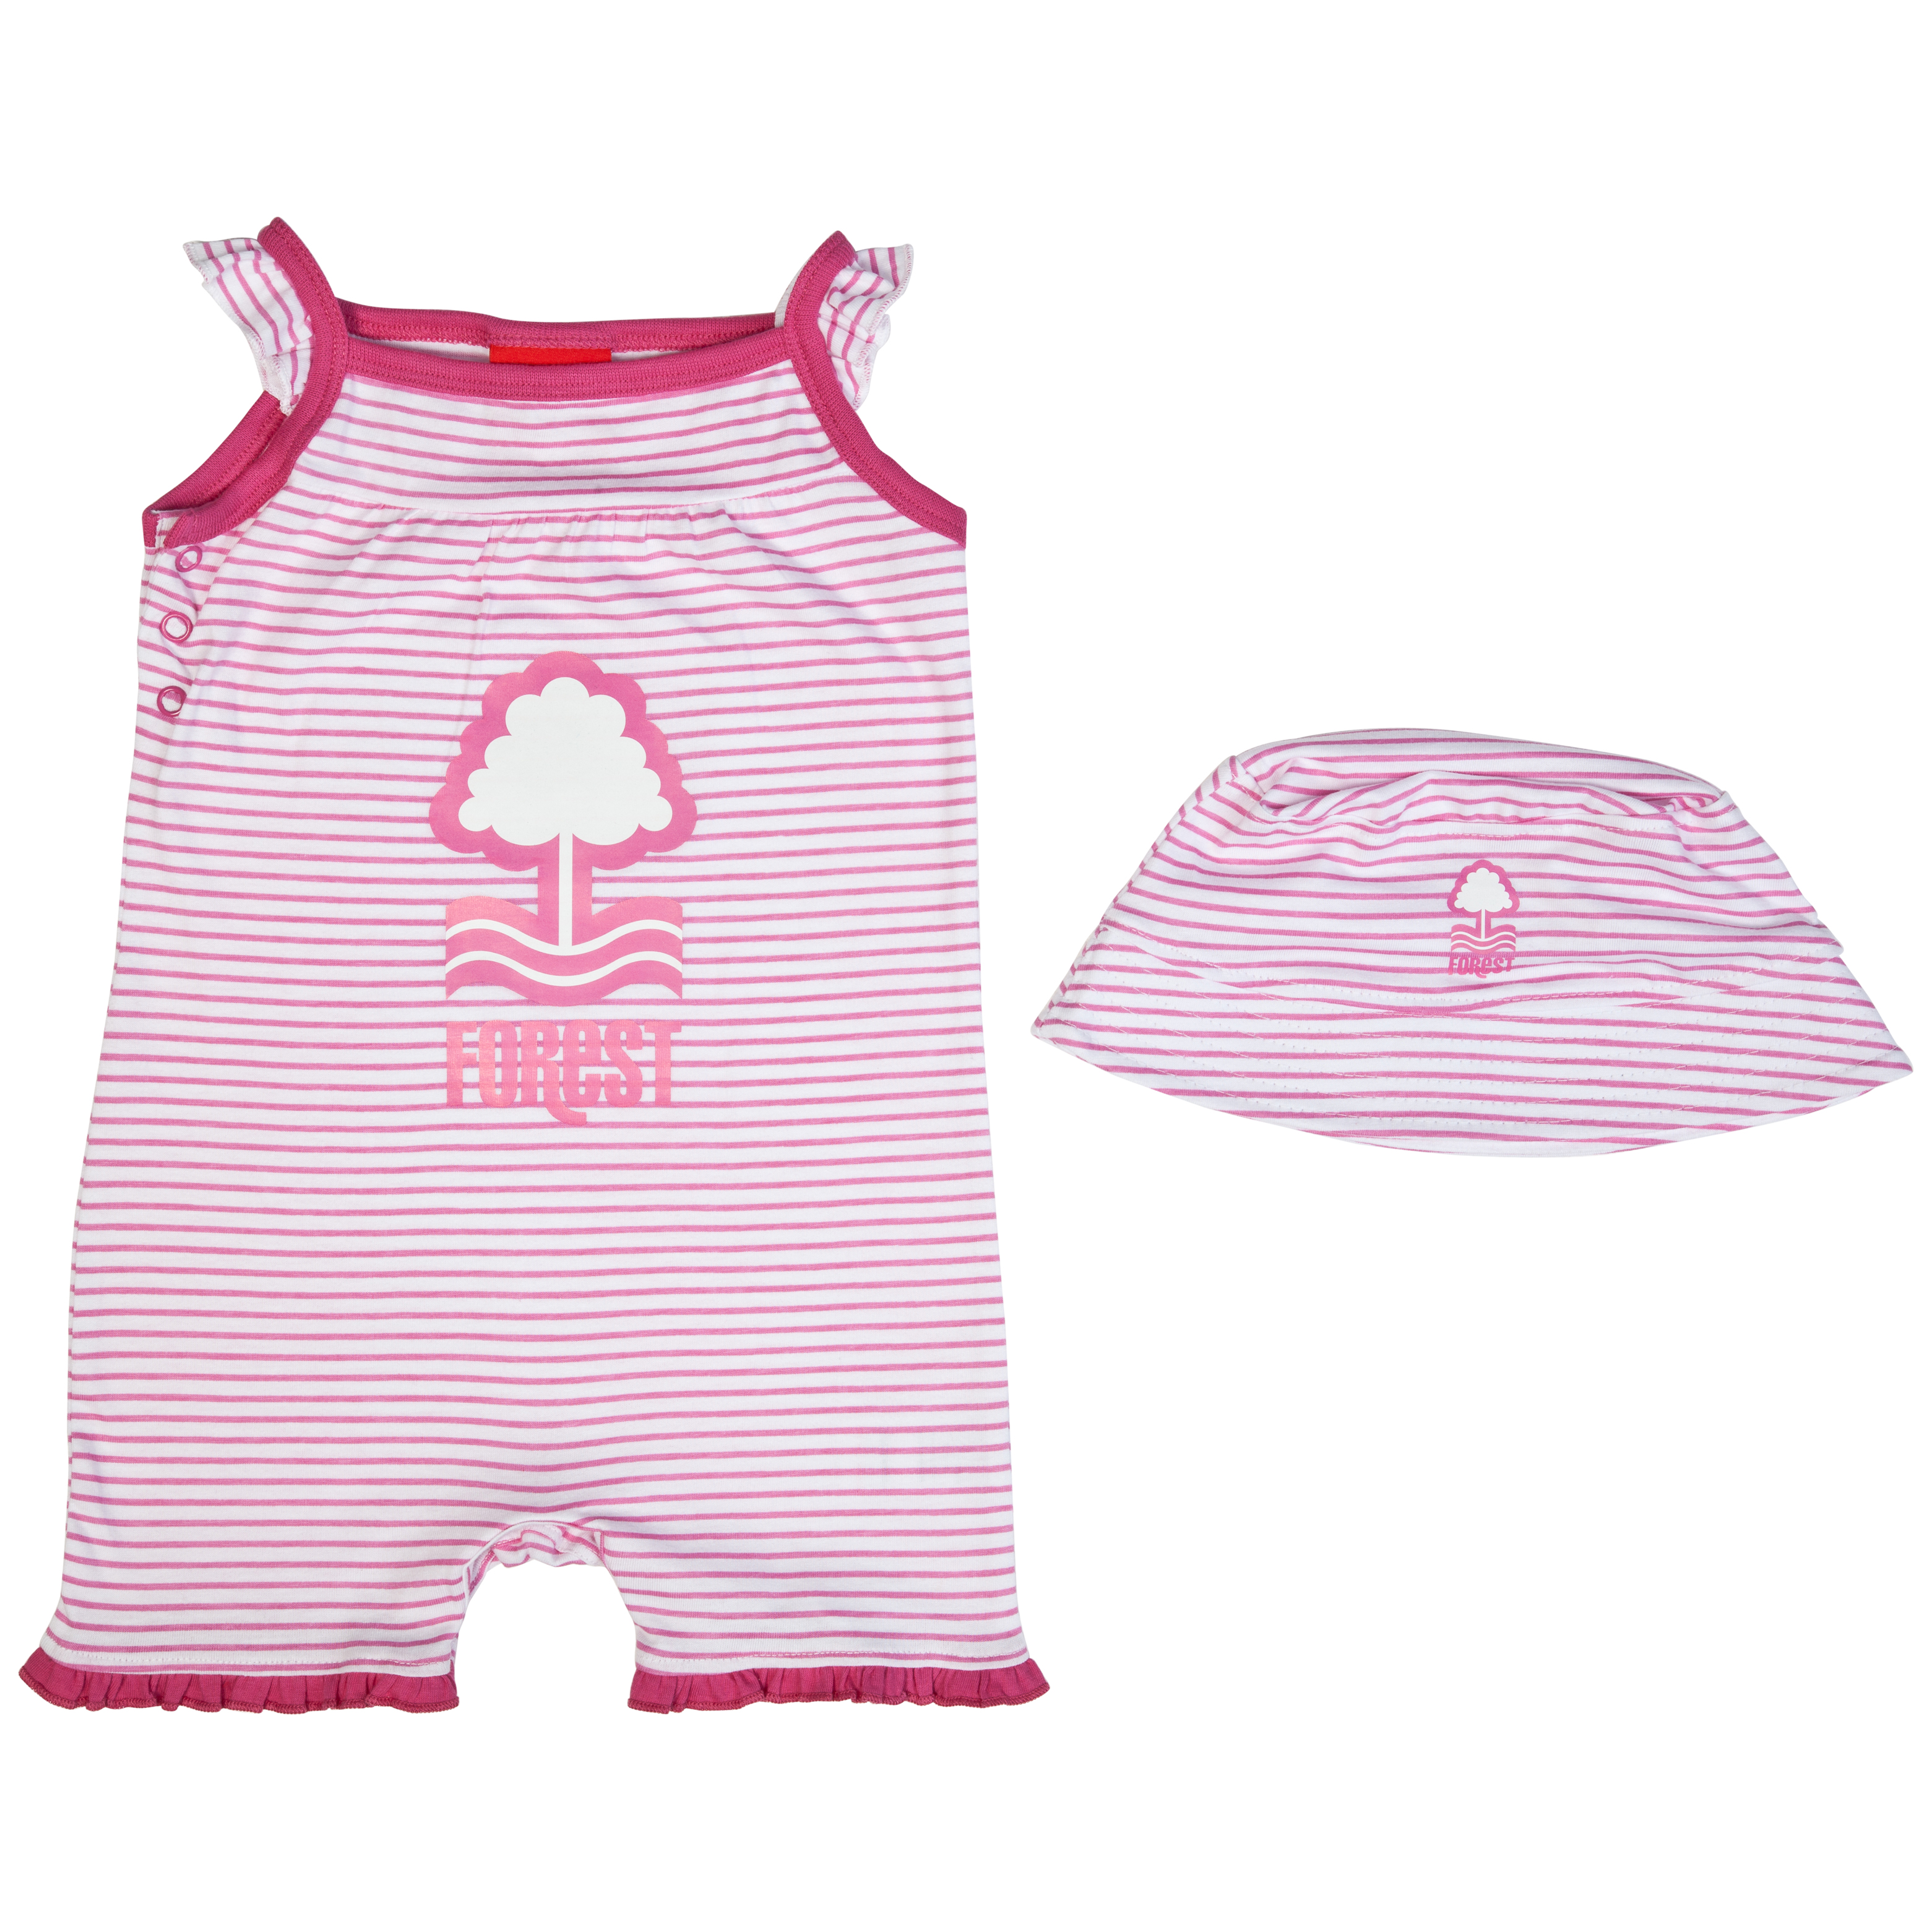 Nottingham Forest Crest Romper and Hat -White/Pink	 - Baby